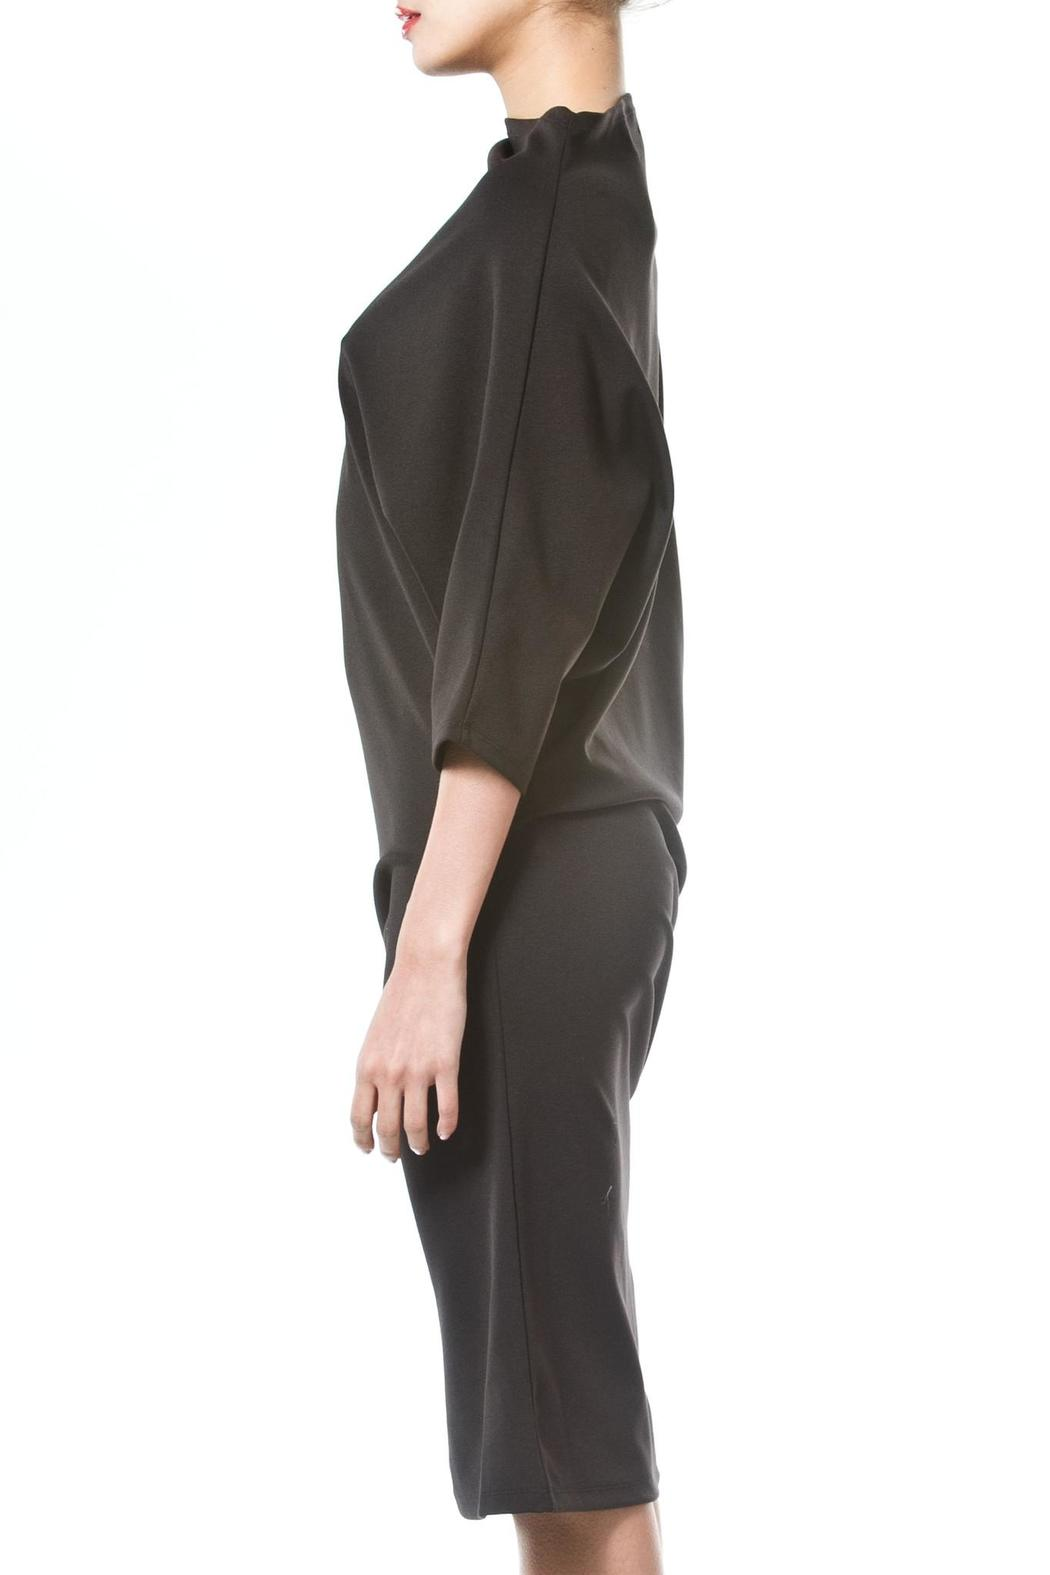 Madonna & Co Asymmetrical Knit Dress - Front Full Image